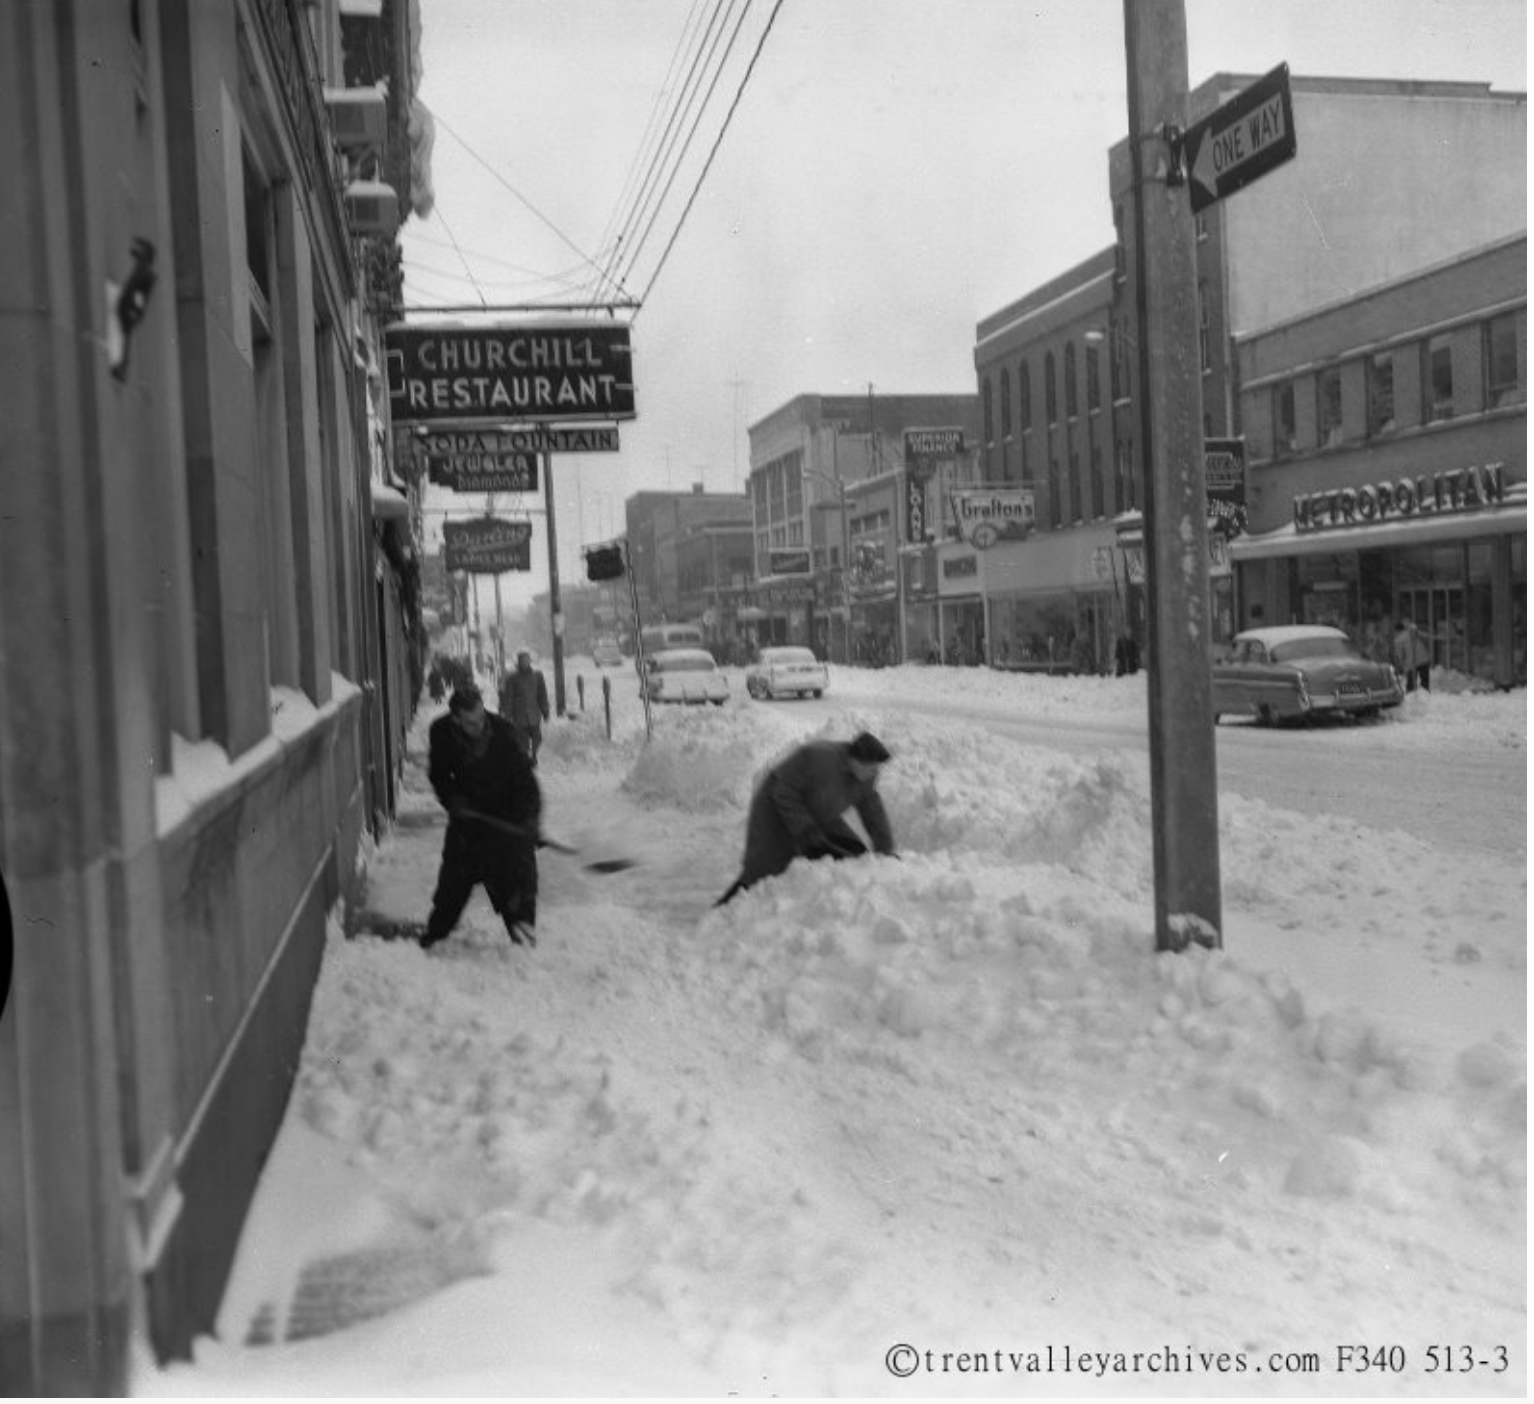 Digging out from a snowfall back in the day in Peterborough